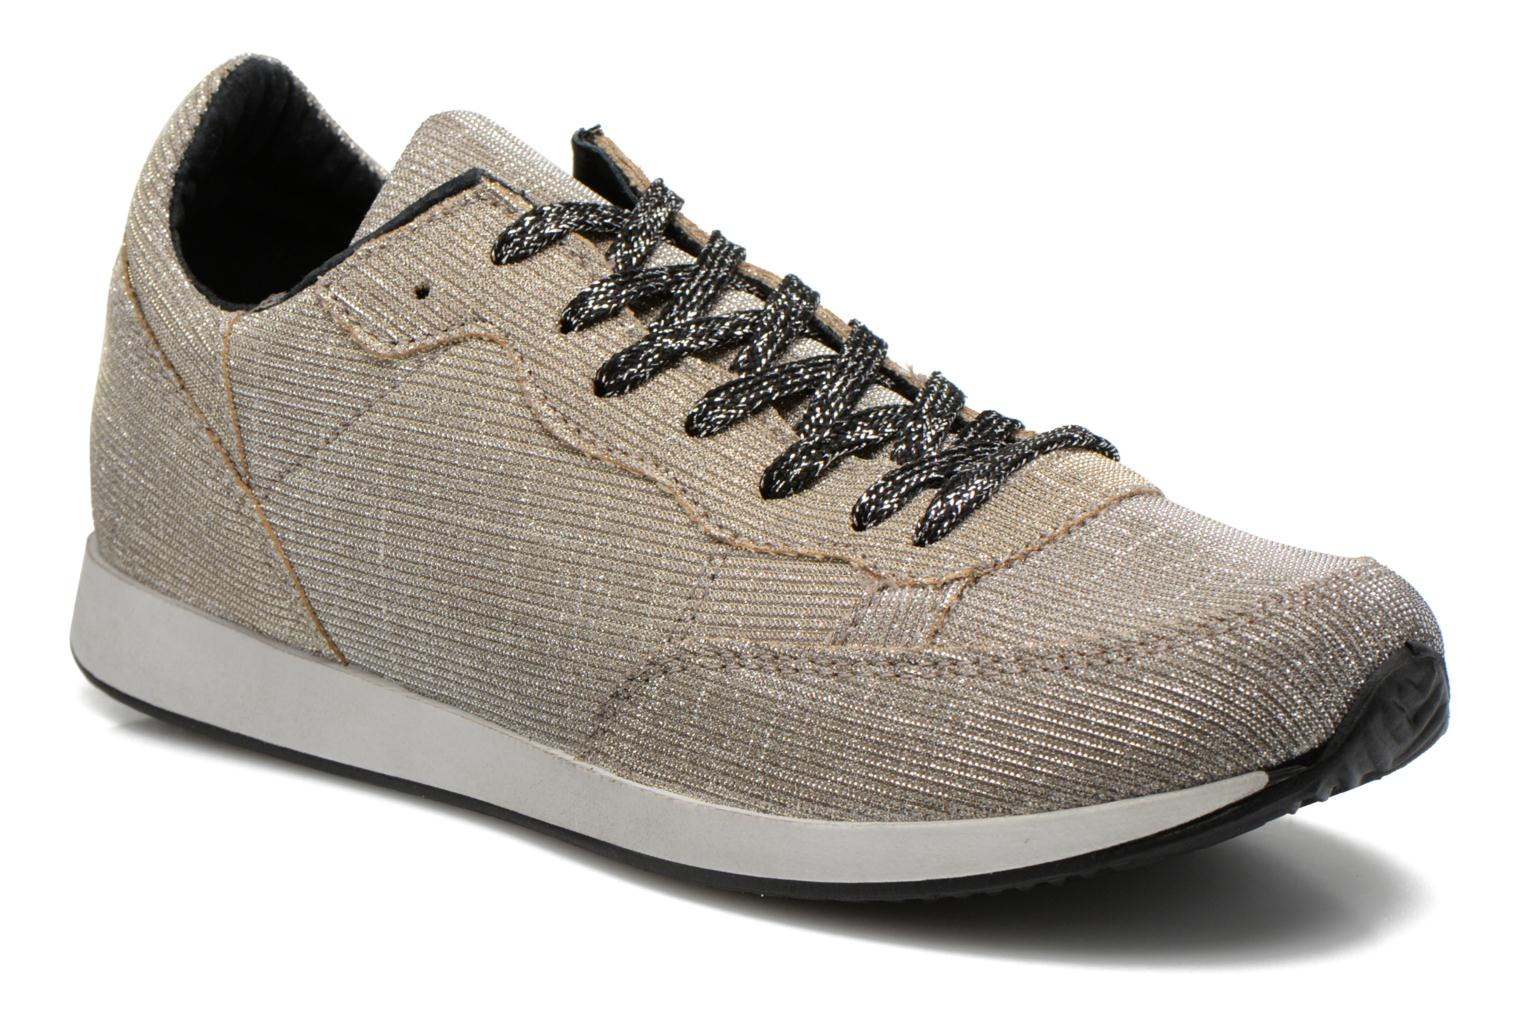 Sneakers Run silver by Ippon Vintage